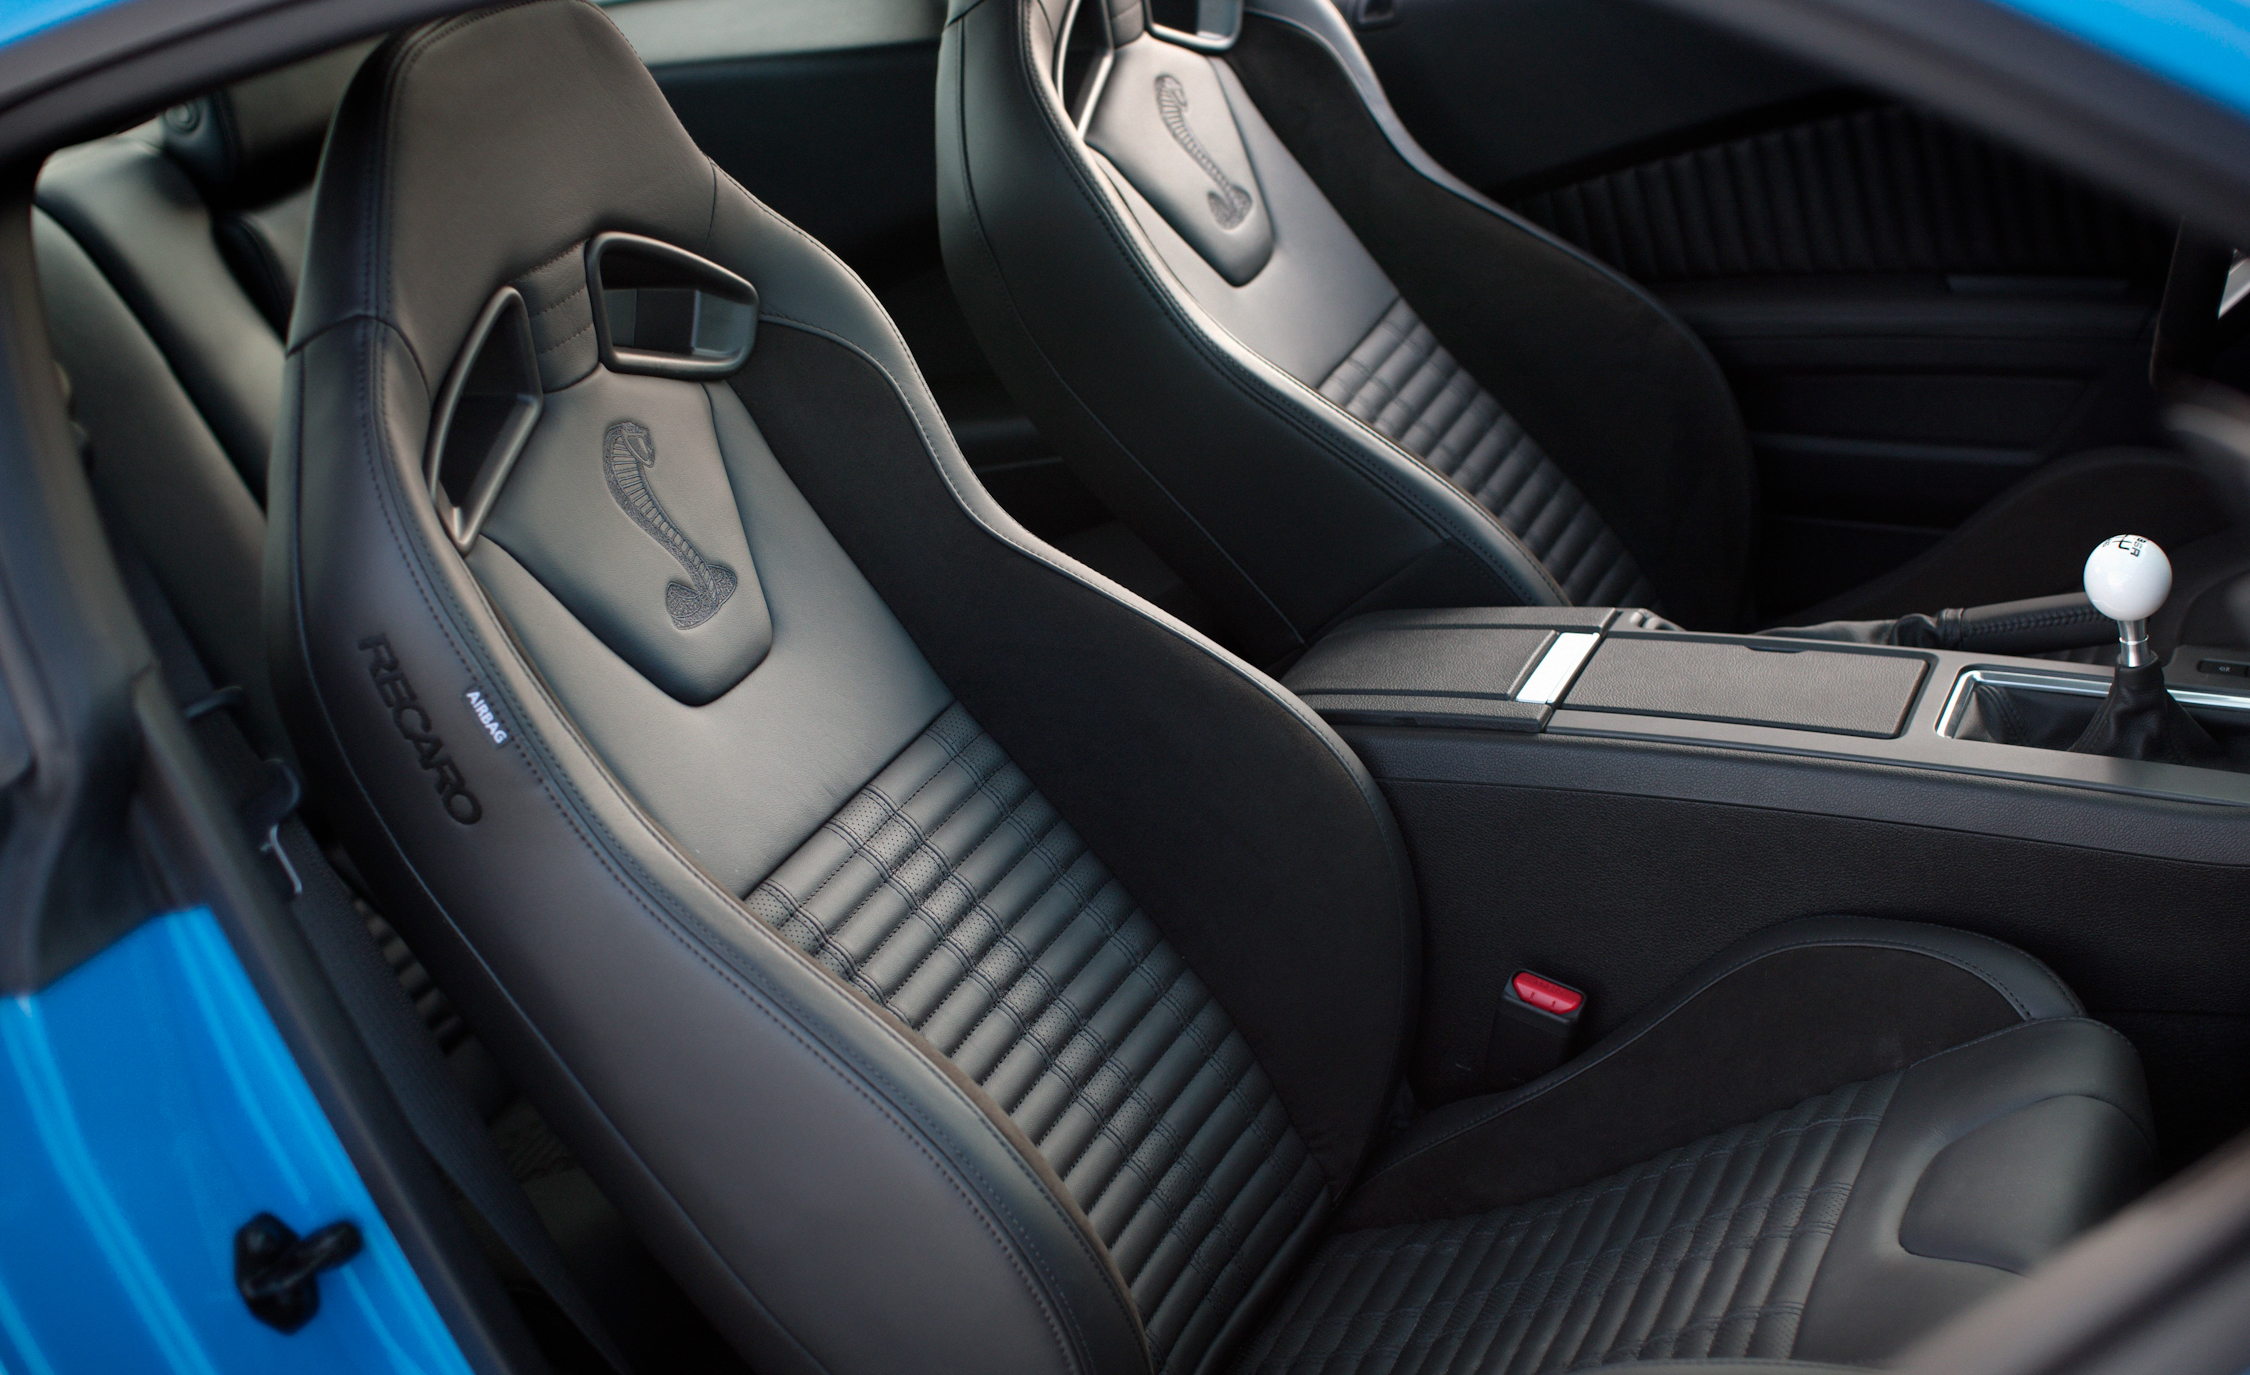 2013 Ford Mustang Shelby GT500 Interior Seats (Photo 22 of 47)